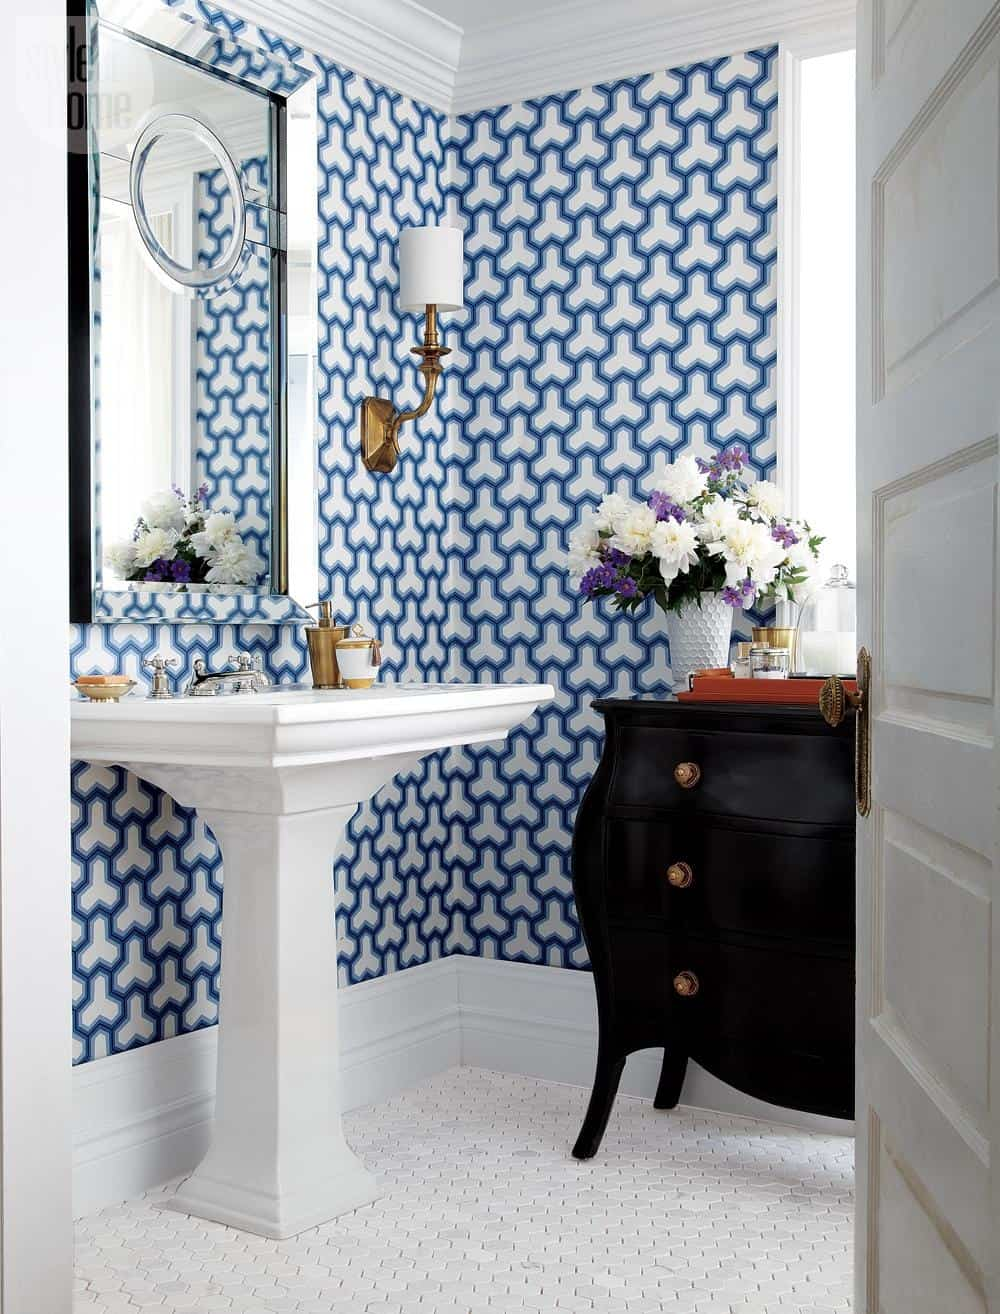 The Blue And White Wallpaper Design Brings On Geometric In A Crisp Bold Look That Can Swing Both Traditional Modern Depending What Is Paired